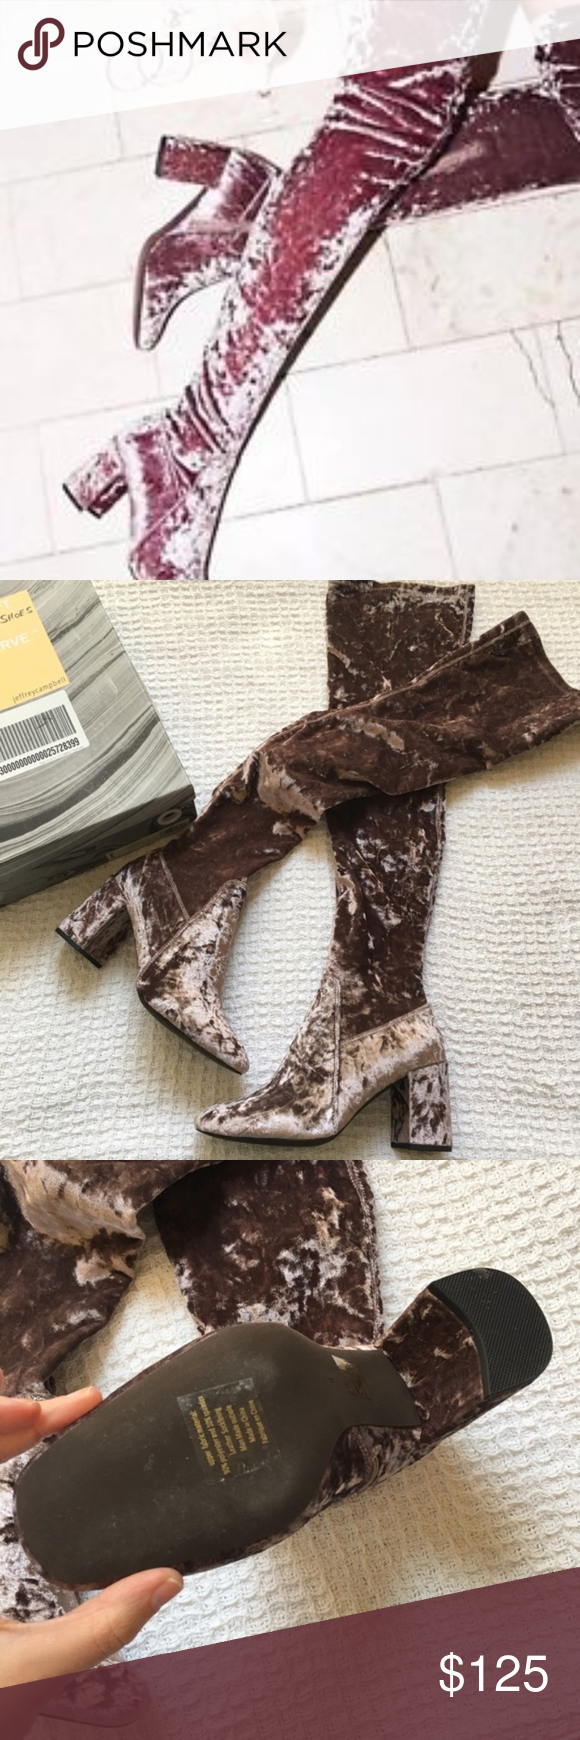 6f77d737139 Jeffrey Campbell Cienega Taupe Crushed Velvet Boot Brand  Jeffrey Campbell  Condition  Like new!